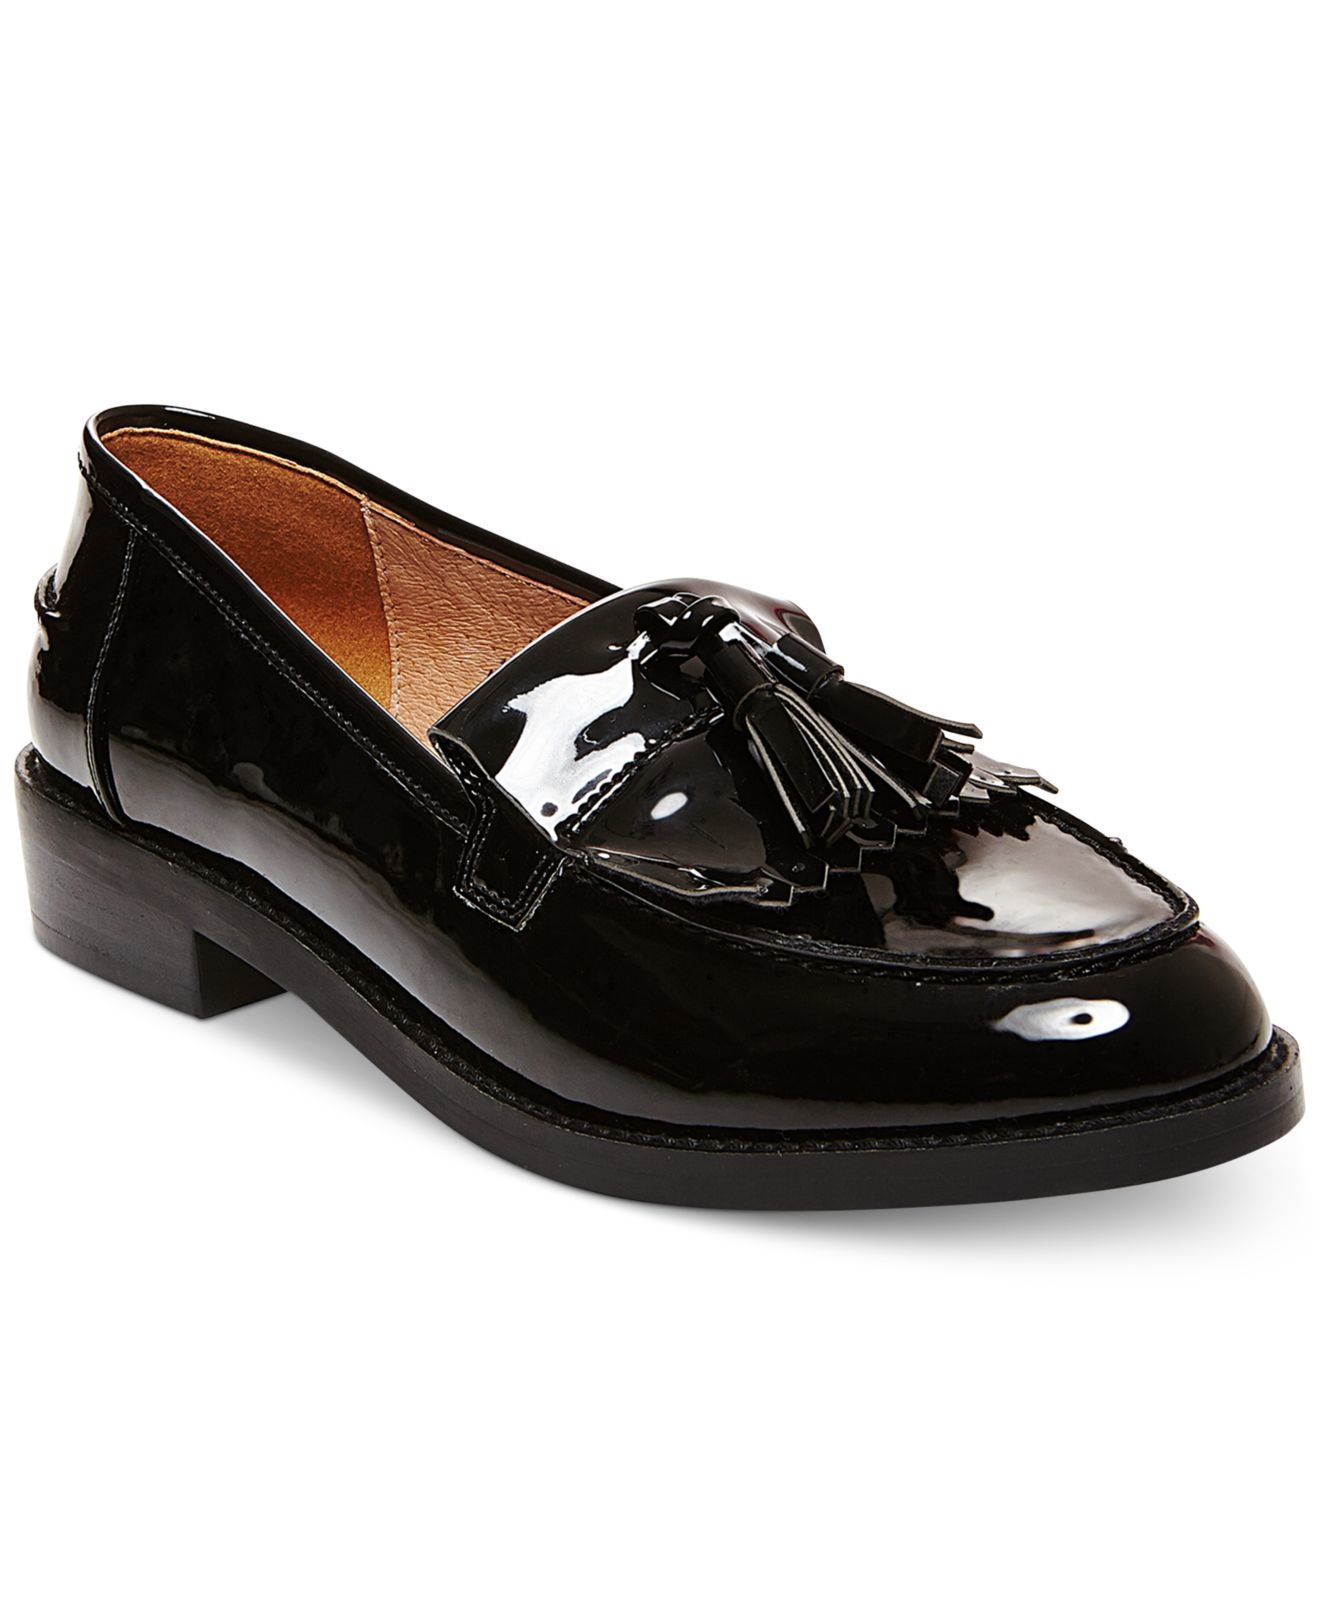 Steve madden Women's Meela Lug Tassel Loafer in Black | Lyst